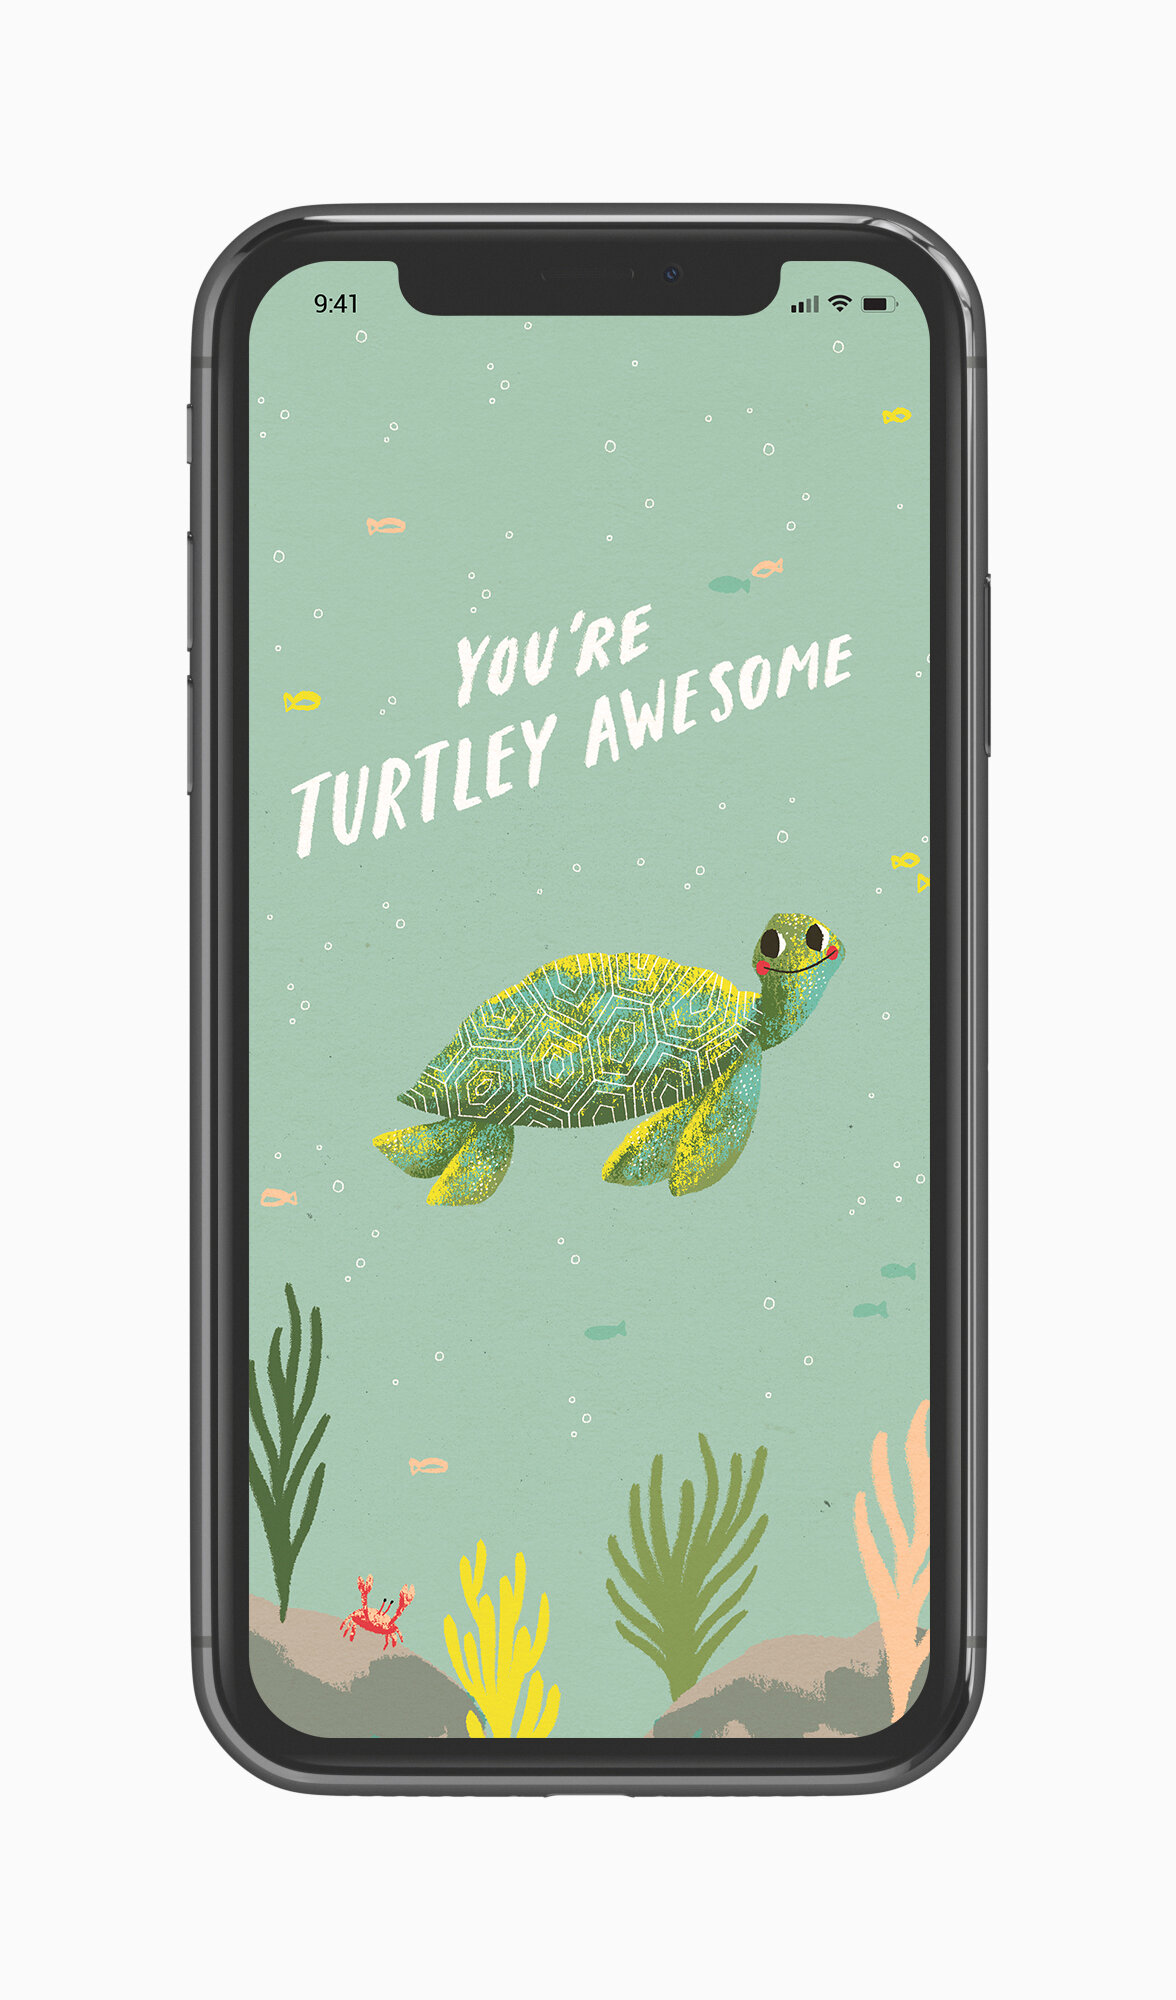 Wallpaper Zoom Background Turtley Awesome Ohh Deer Blog